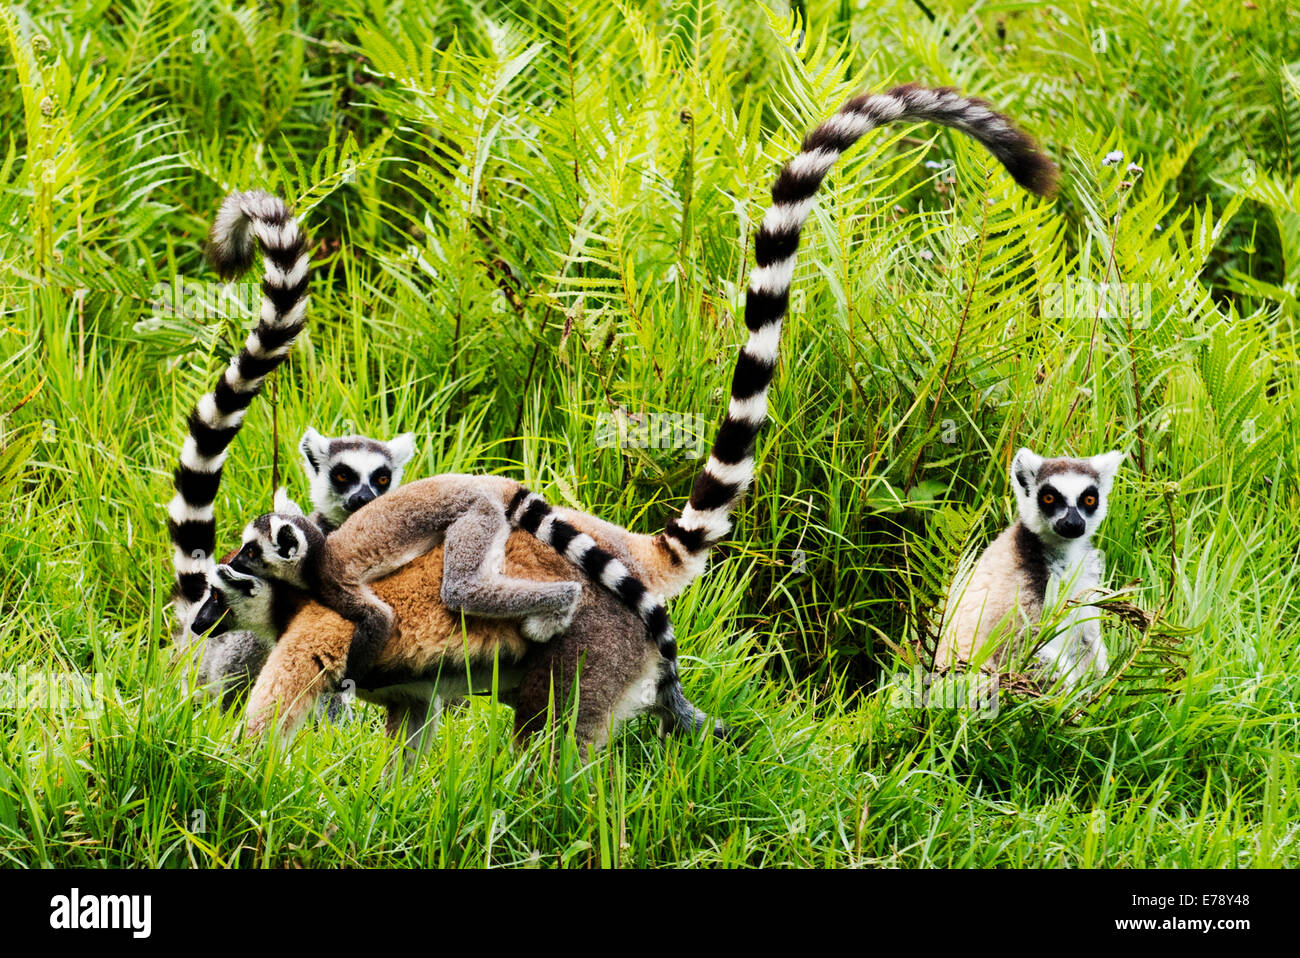 Ring-Tailed Lemuren in Madagaskar. Stockbild